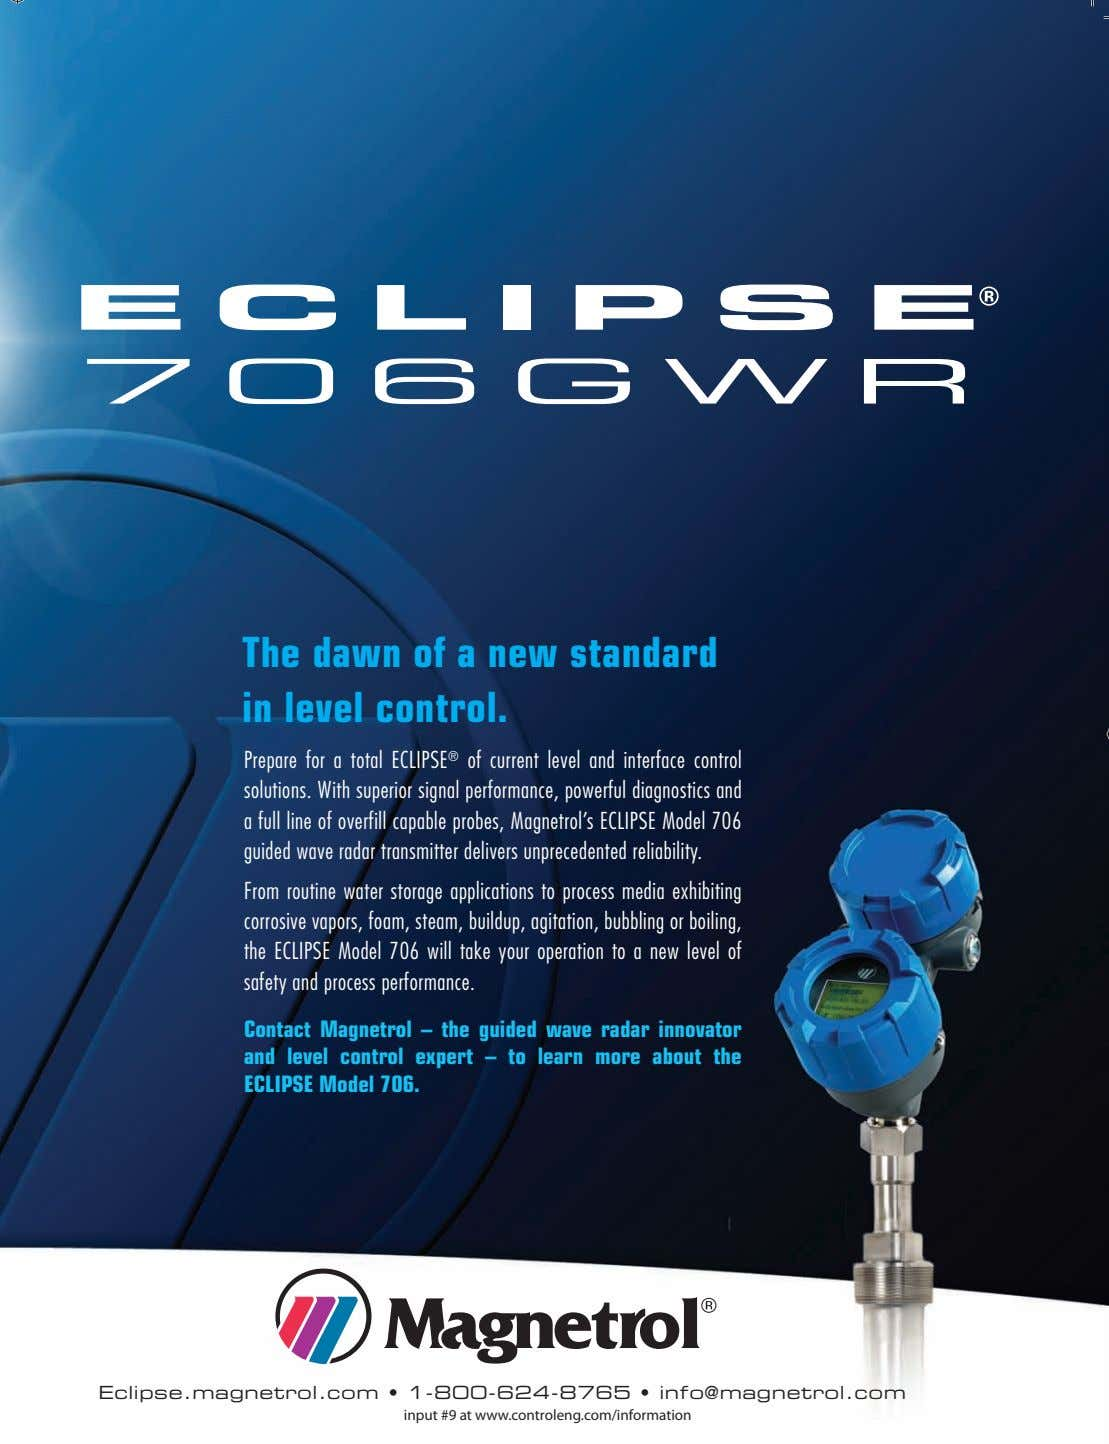 The dawn of a new standard in level control. Prepare for a total ECLIPSE ®